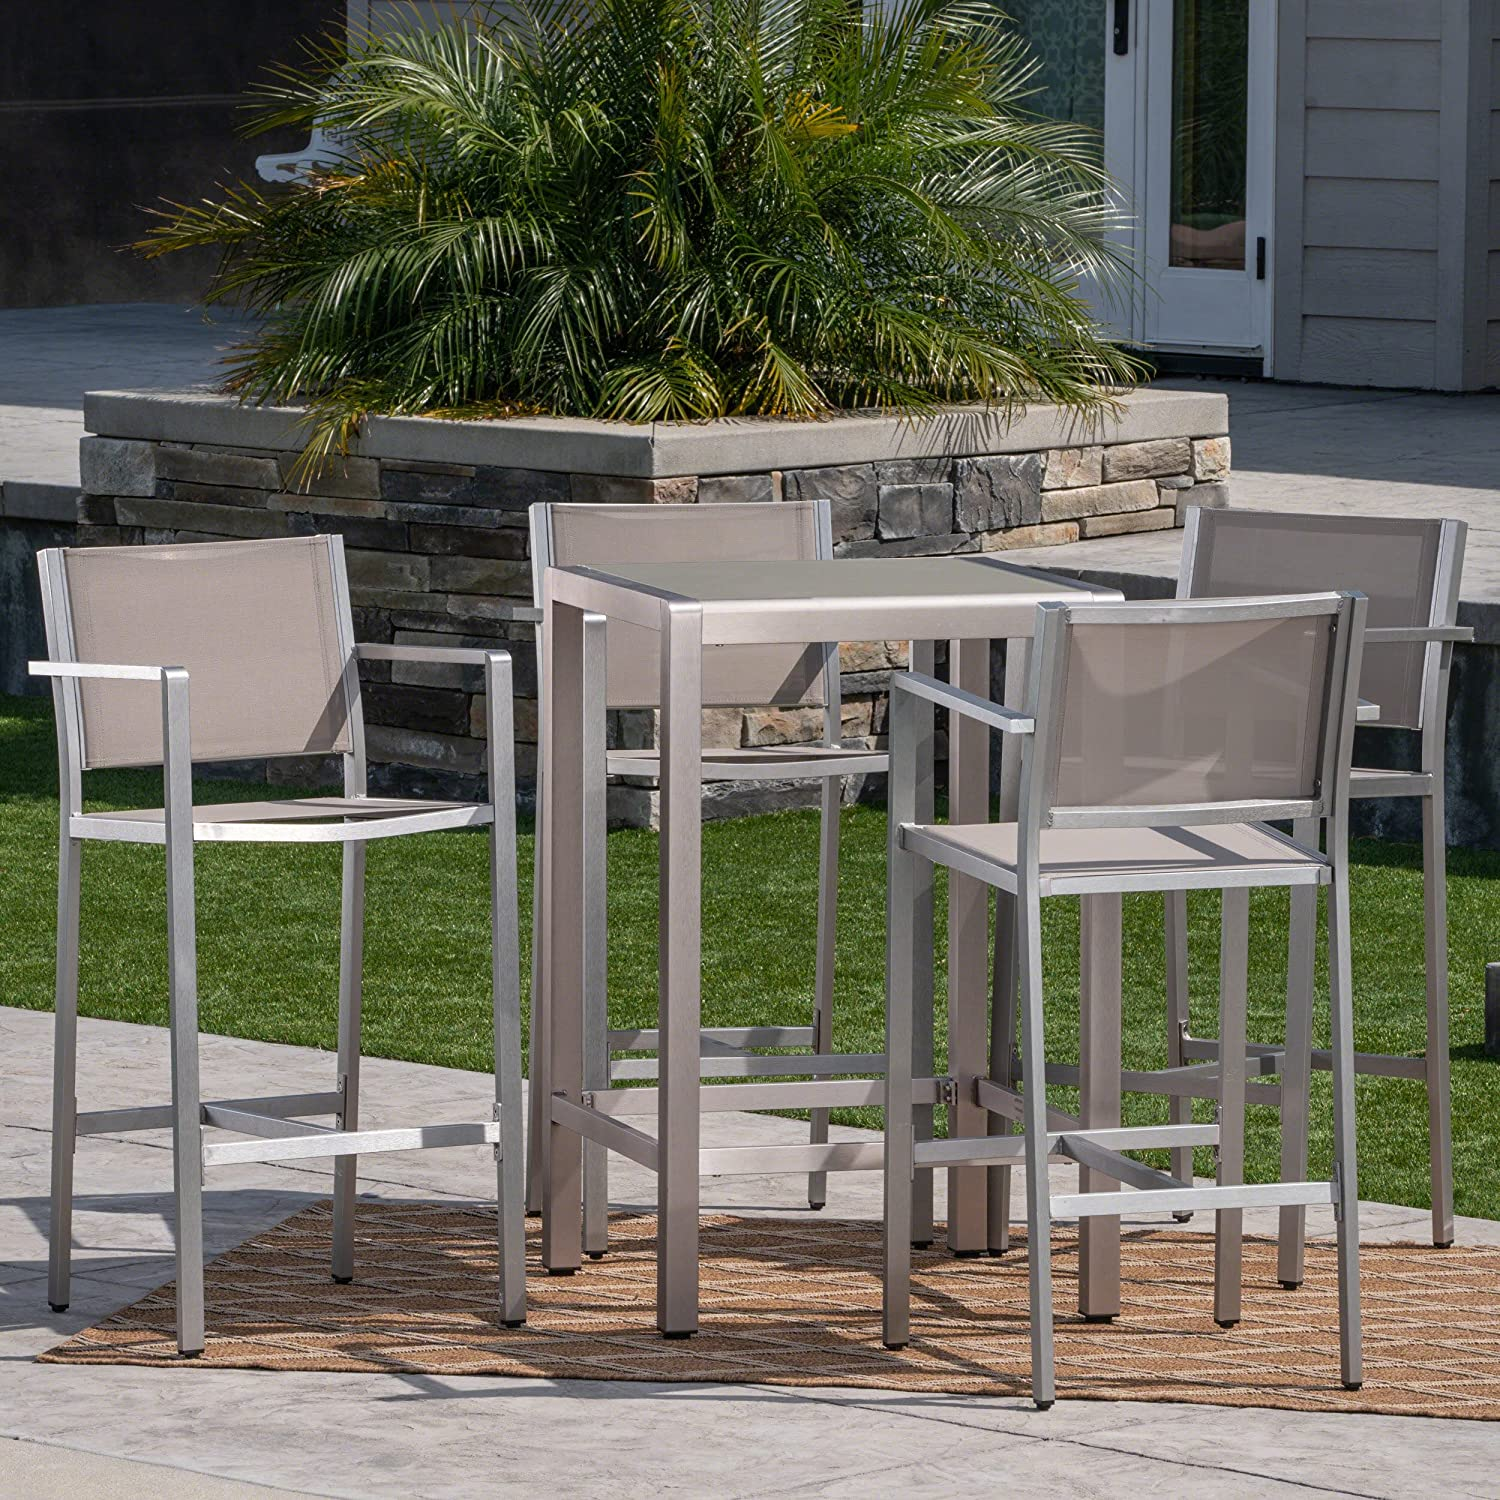 Christopher Knight Home Great Deal Furniture Tracy Outdoor 5 Piece Rust Proof Aluminum Mesh Bar Set With Glass Top Table In Silver Grey Garden Outdoor